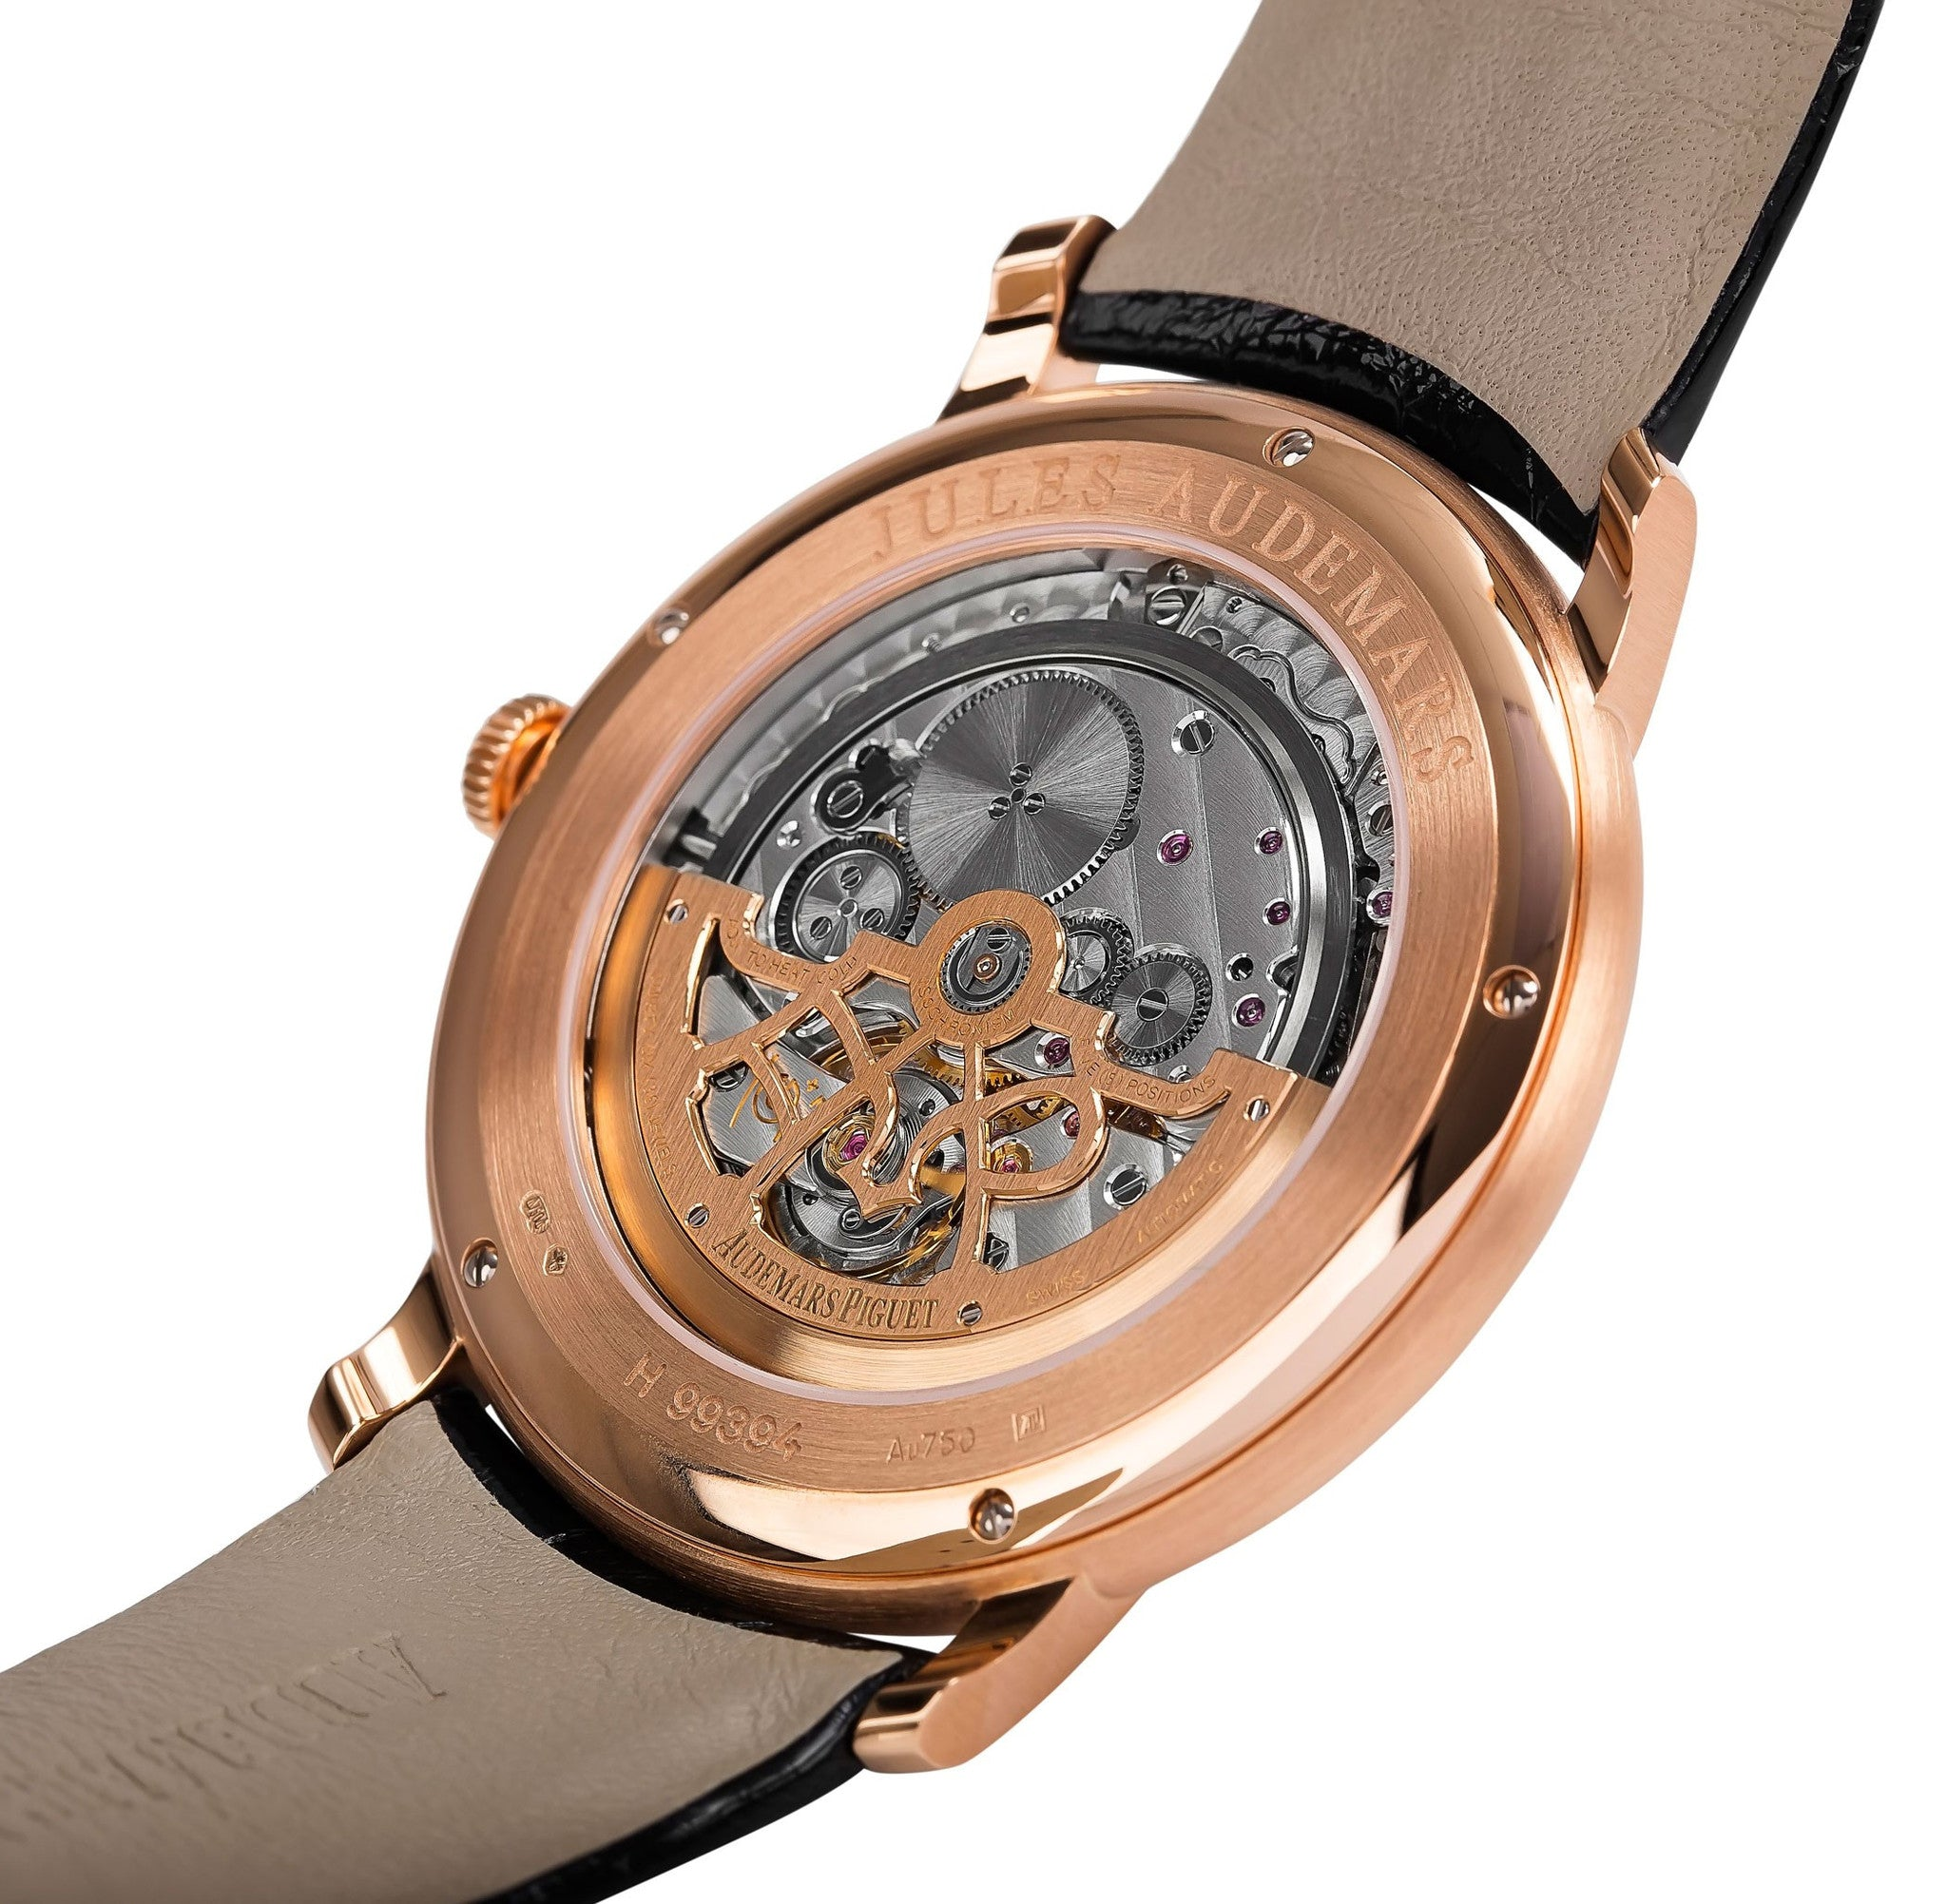 Audemars Piguet Jules Audemars Rose Gold Diamonds